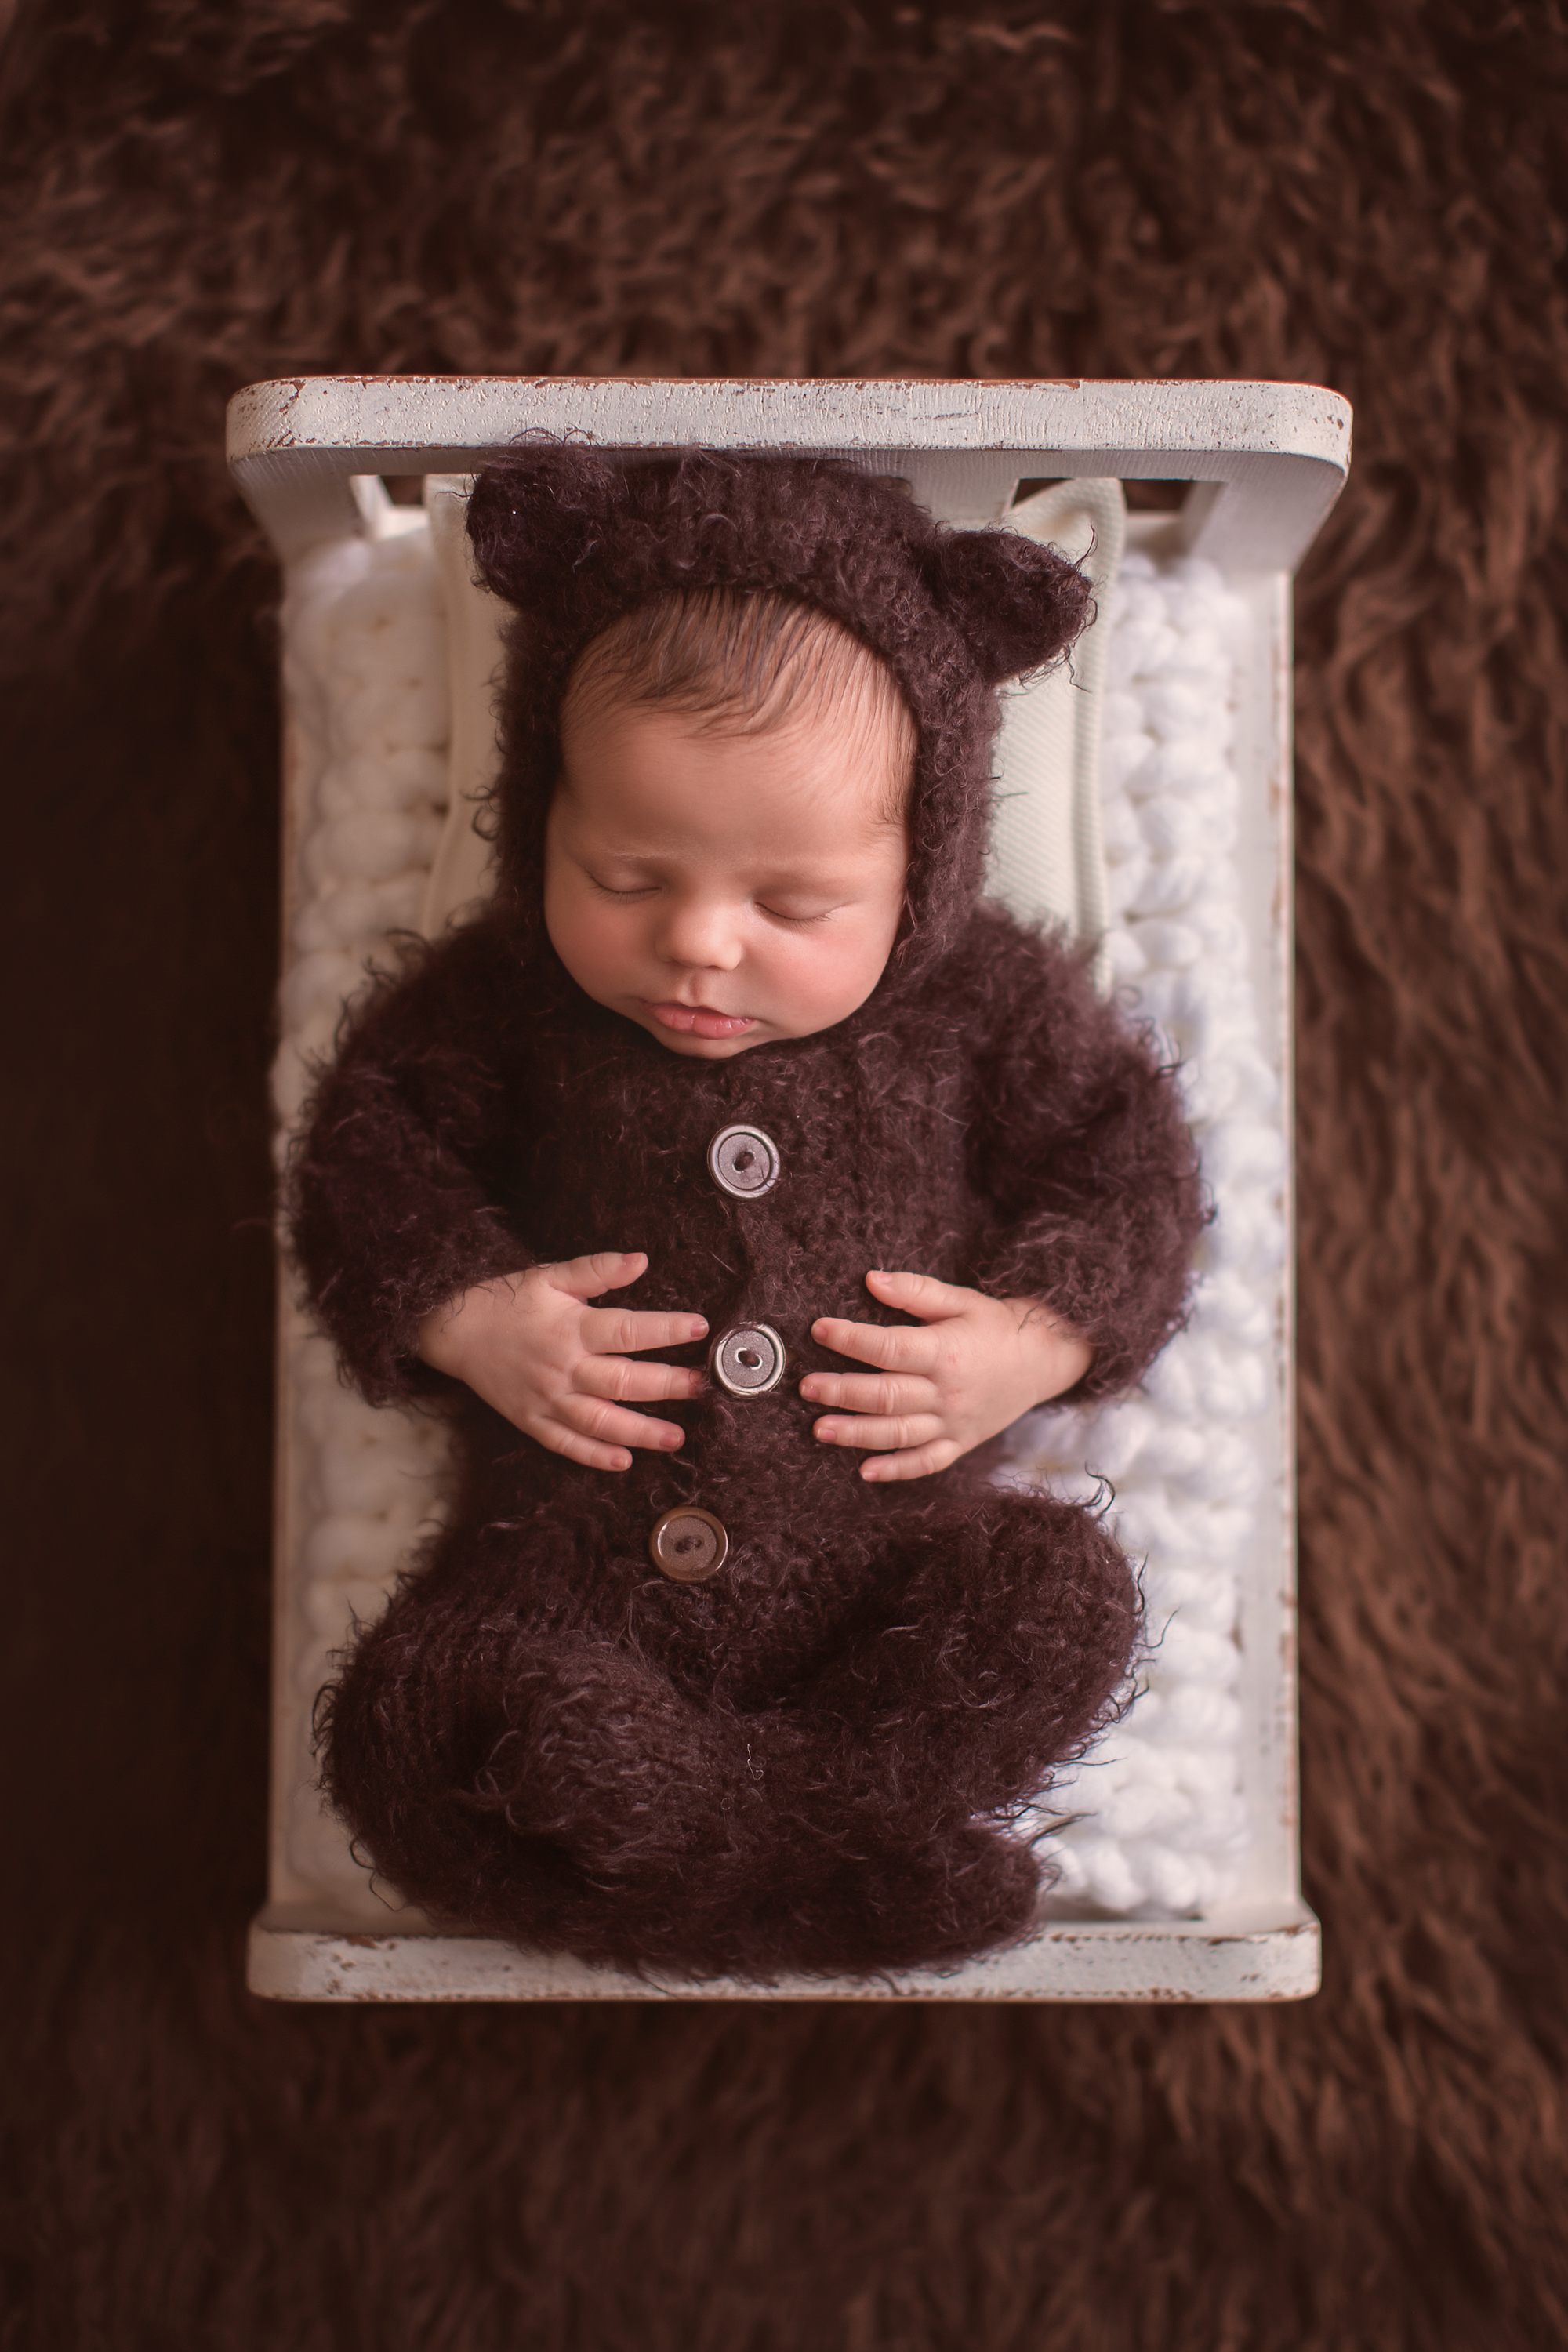 Newborn baby boy photoshoot ideas. Calgary and Airdrie newborn baby photographer - Milashka Photography. Newborn baby boy is dressed in a bear onesie and is sleeping soundly on a little bed.